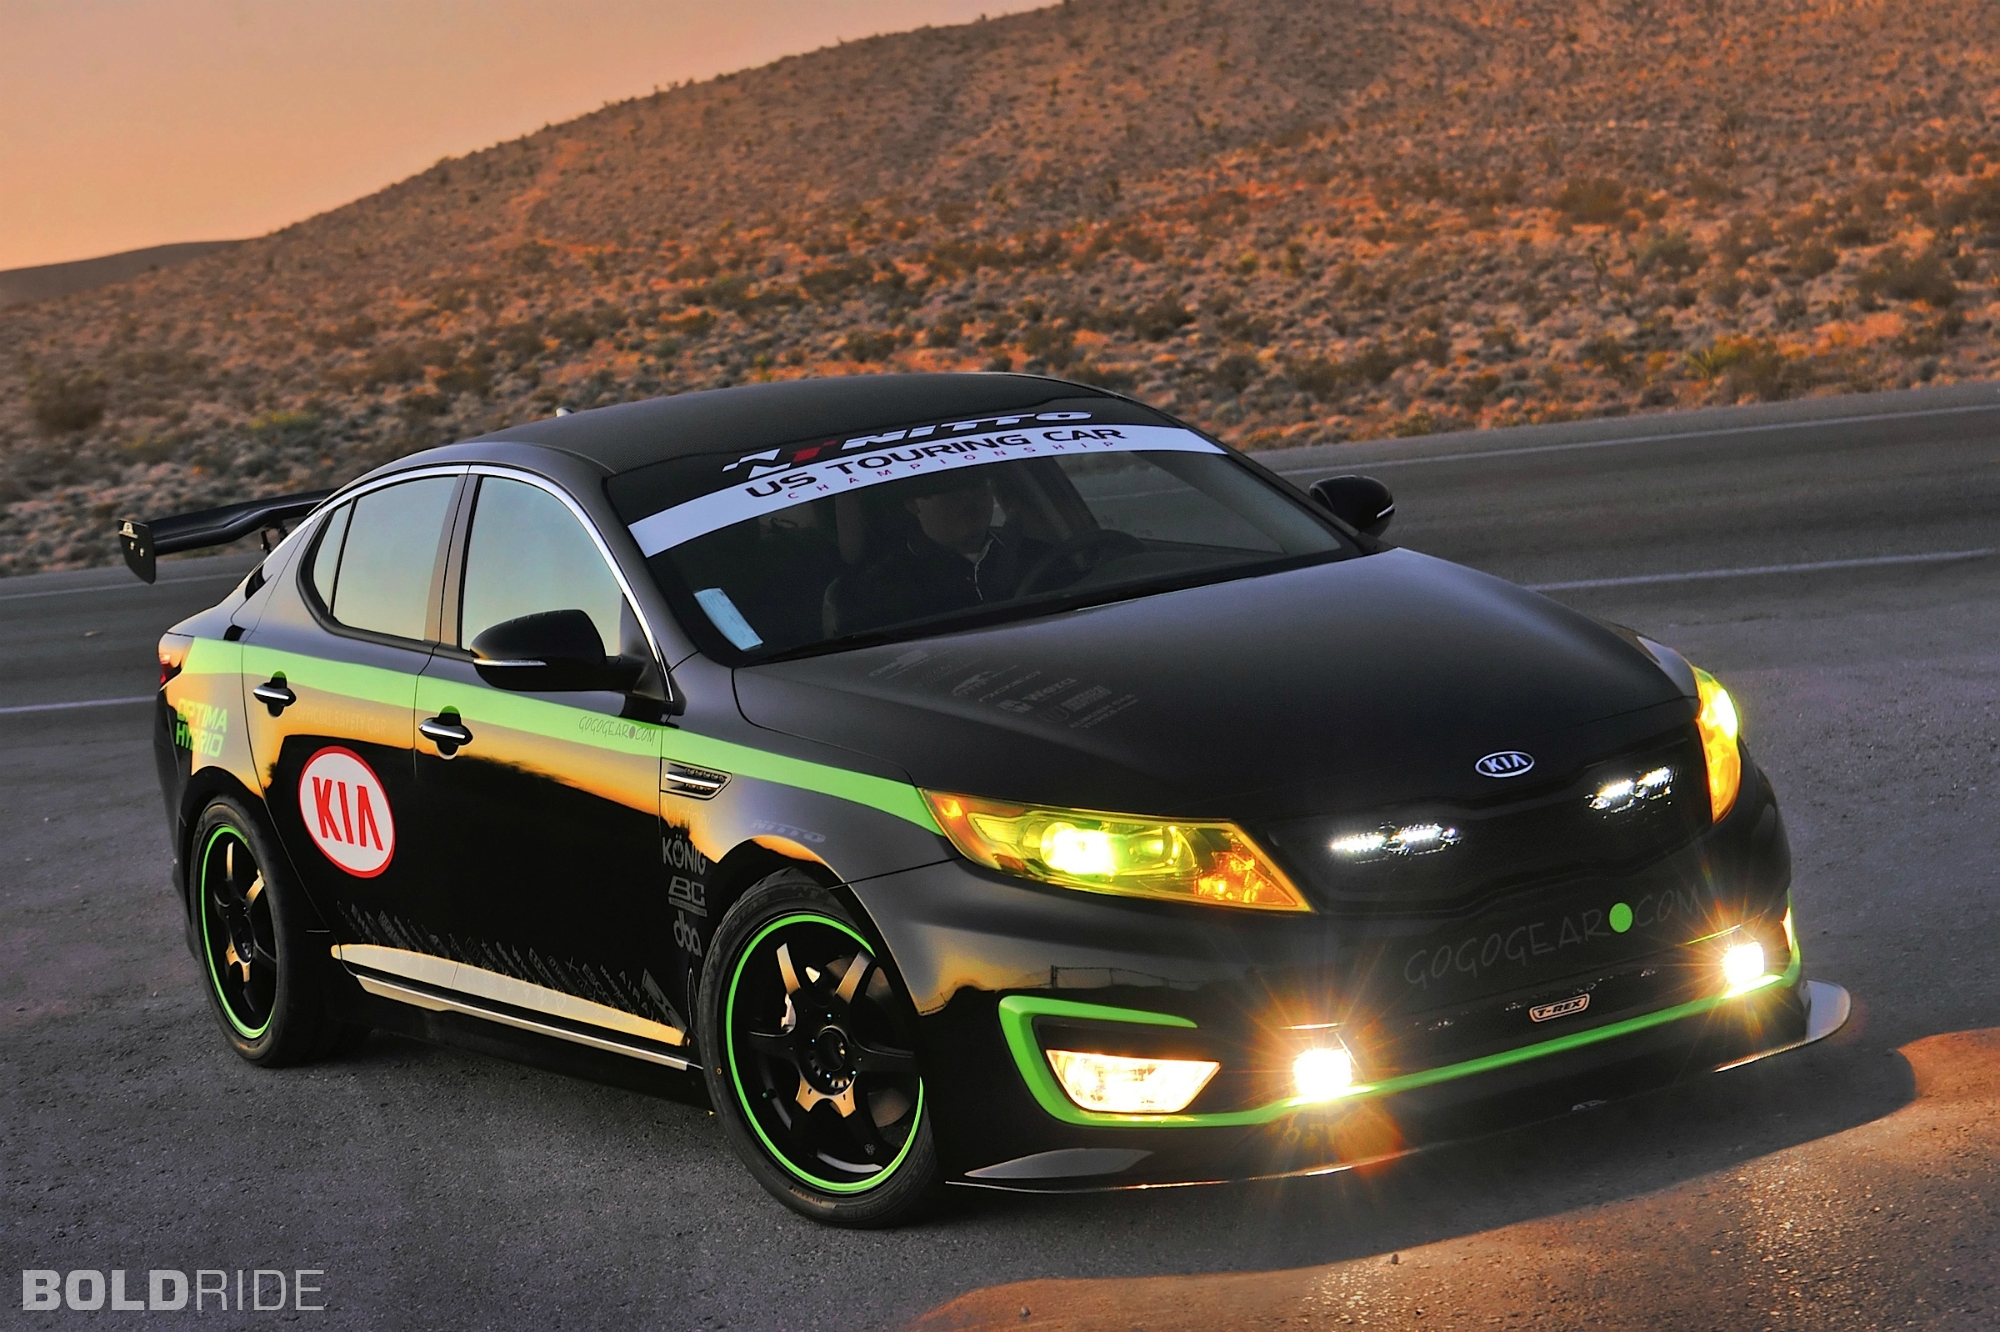 2012 kia optima hybrid pace car tuning wallpaper. Black Bedroom Furniture Sets. Home Design Ideas